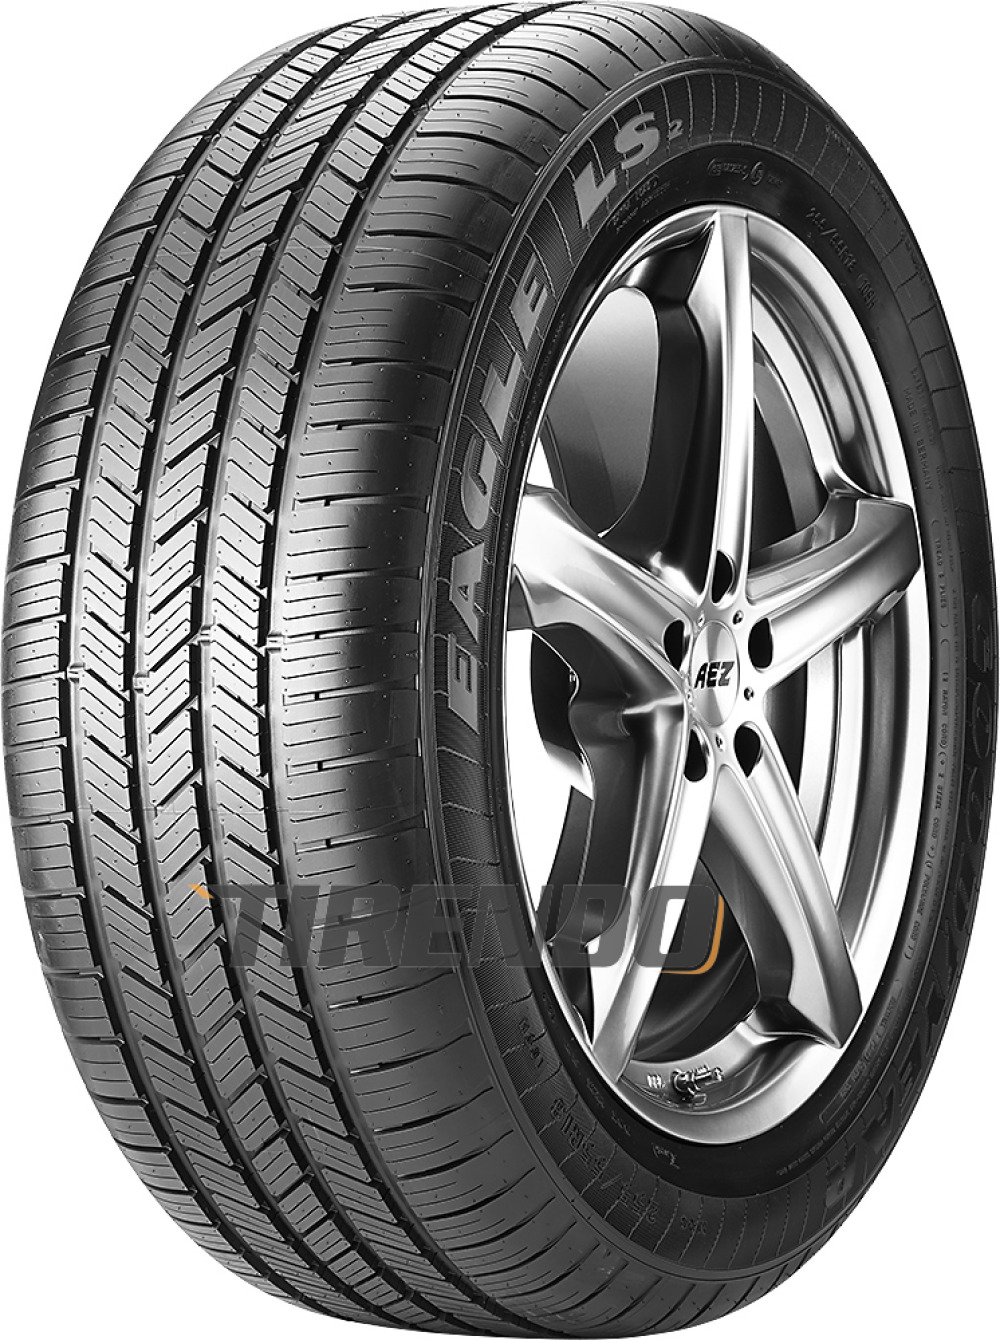 goodyear eagle ls2 245 45 r18 100h xl with rim protection mfs ao blt. Black Bedroom Furniture Sets. Home Design Ideas